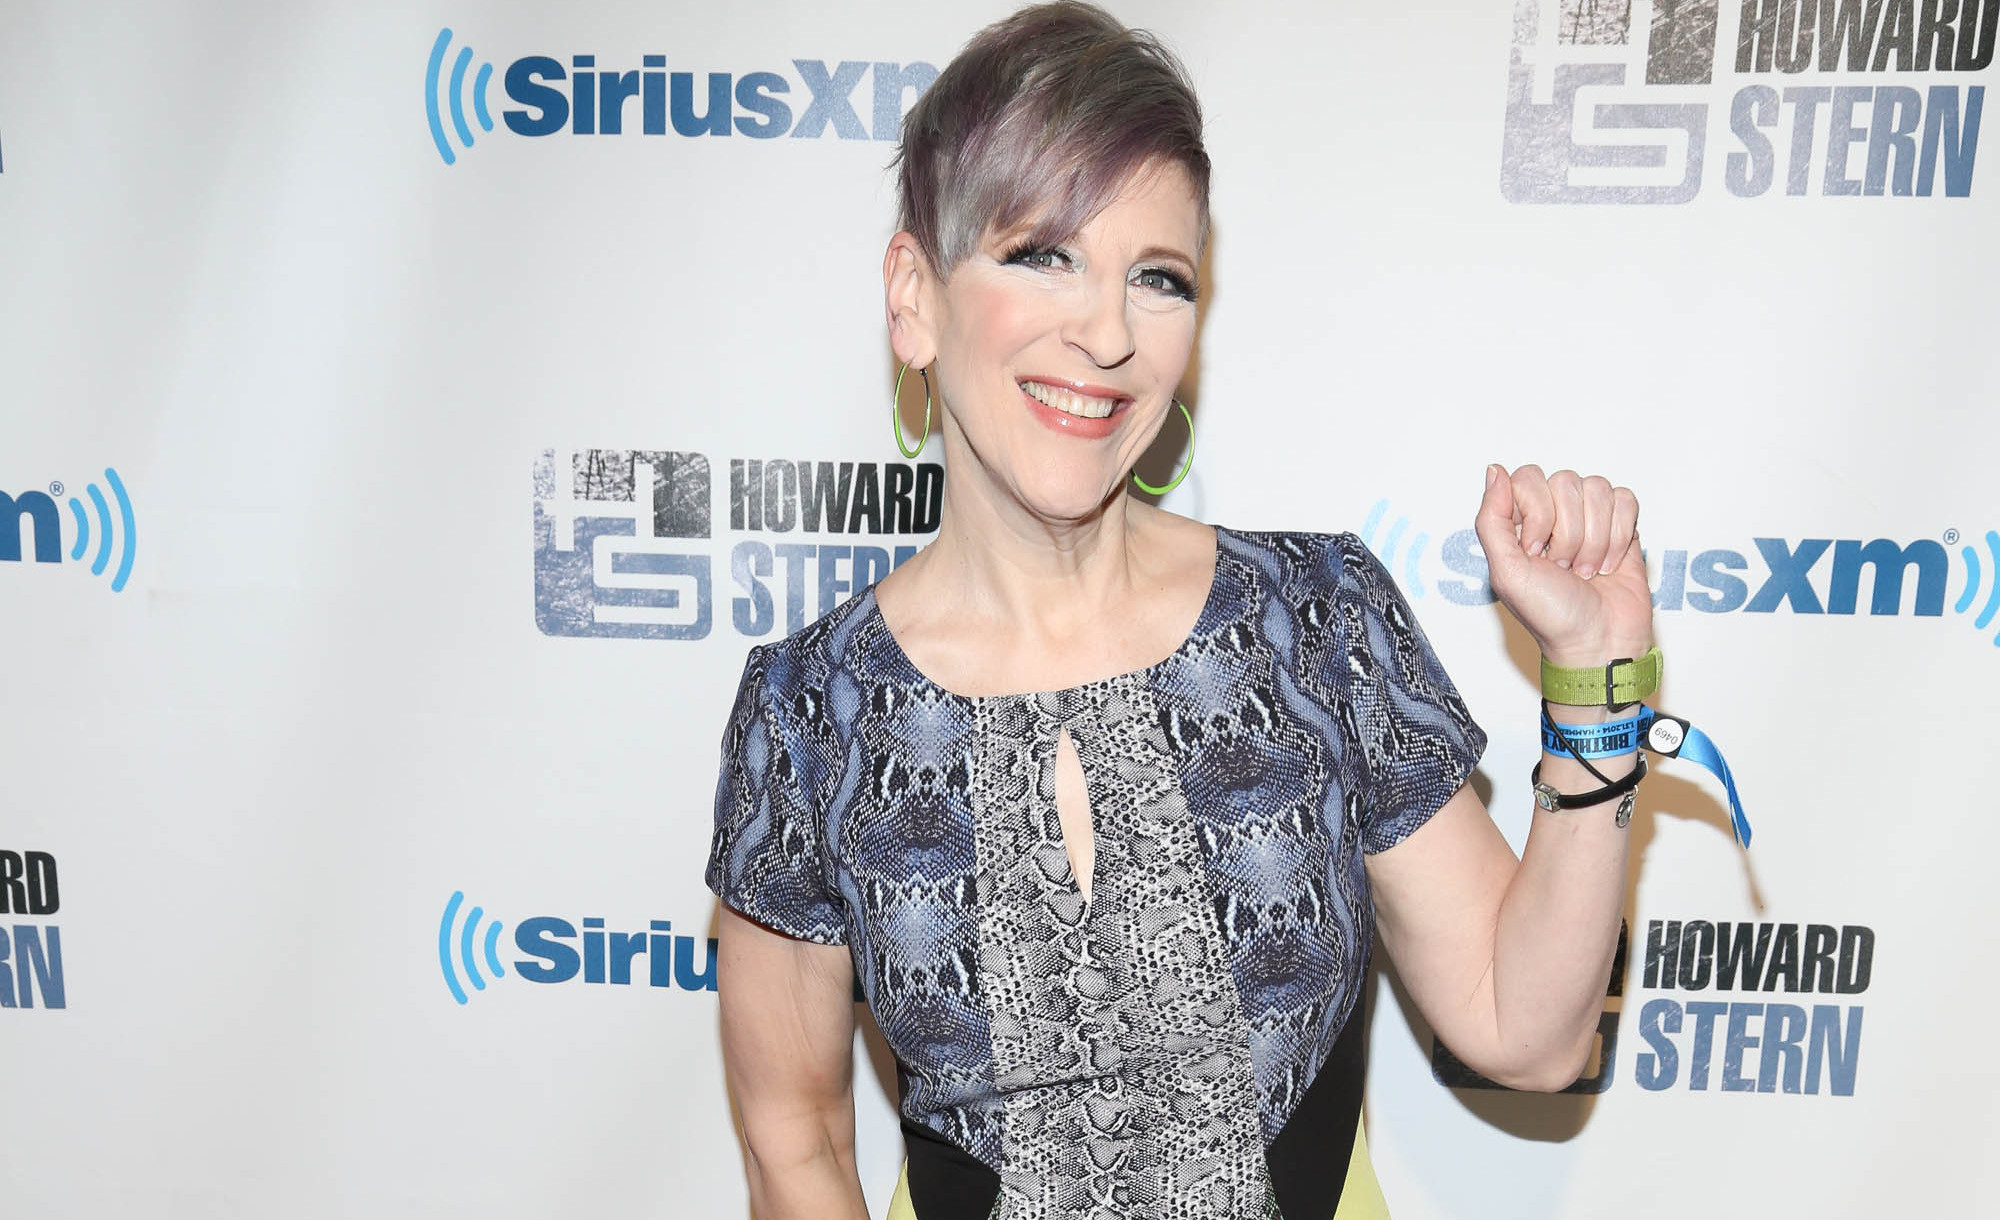 lisa lampanelli wikipedialisa lampanelli wikipedia, lisa lampanelli donald trump, lisa lampanelli roast jokes, lisa lampanelli, lisa lampanelli lose weight, lisa lampanelli youtube, lisa lampanelli 2015, lisa lampanelli wiki, lisa lampanelli boyfriend, lisa lampanelli take it like a man, lisa lampanelli calgary, lisa lampanelli tour, lisa lampanelli weight loss, lisa lampanelli roast, lisa lampanelli net worth, lisa lampanelli tickets, lisa lampanelli stand up, lisa lampanelli divorce, lisa lampanelli before and after, lisa lampanelli back to the drawing board